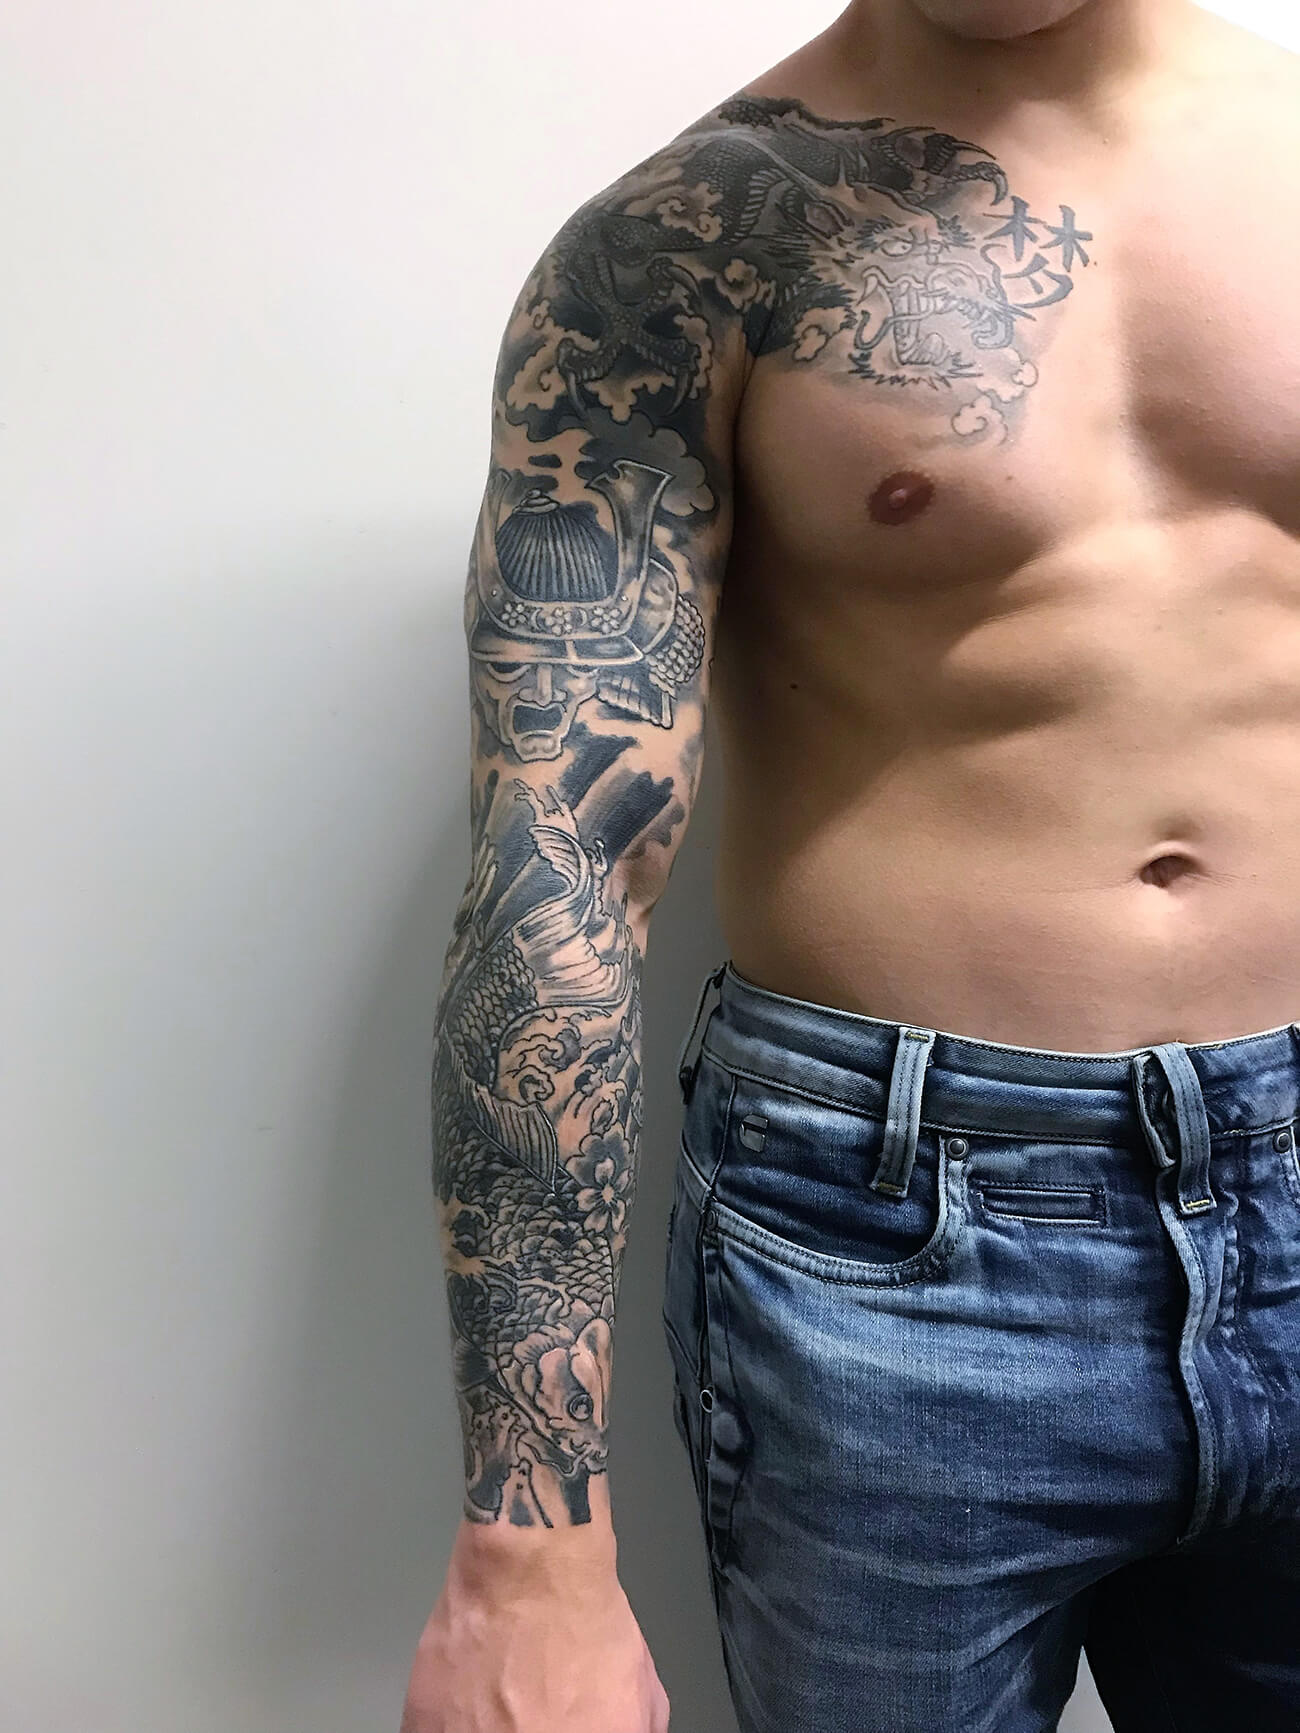 Cosmopolitan Tattoo - Manchette japonaise homme,traditionnel, tatouage noir et gris, dragon, samouraï, carpe koi